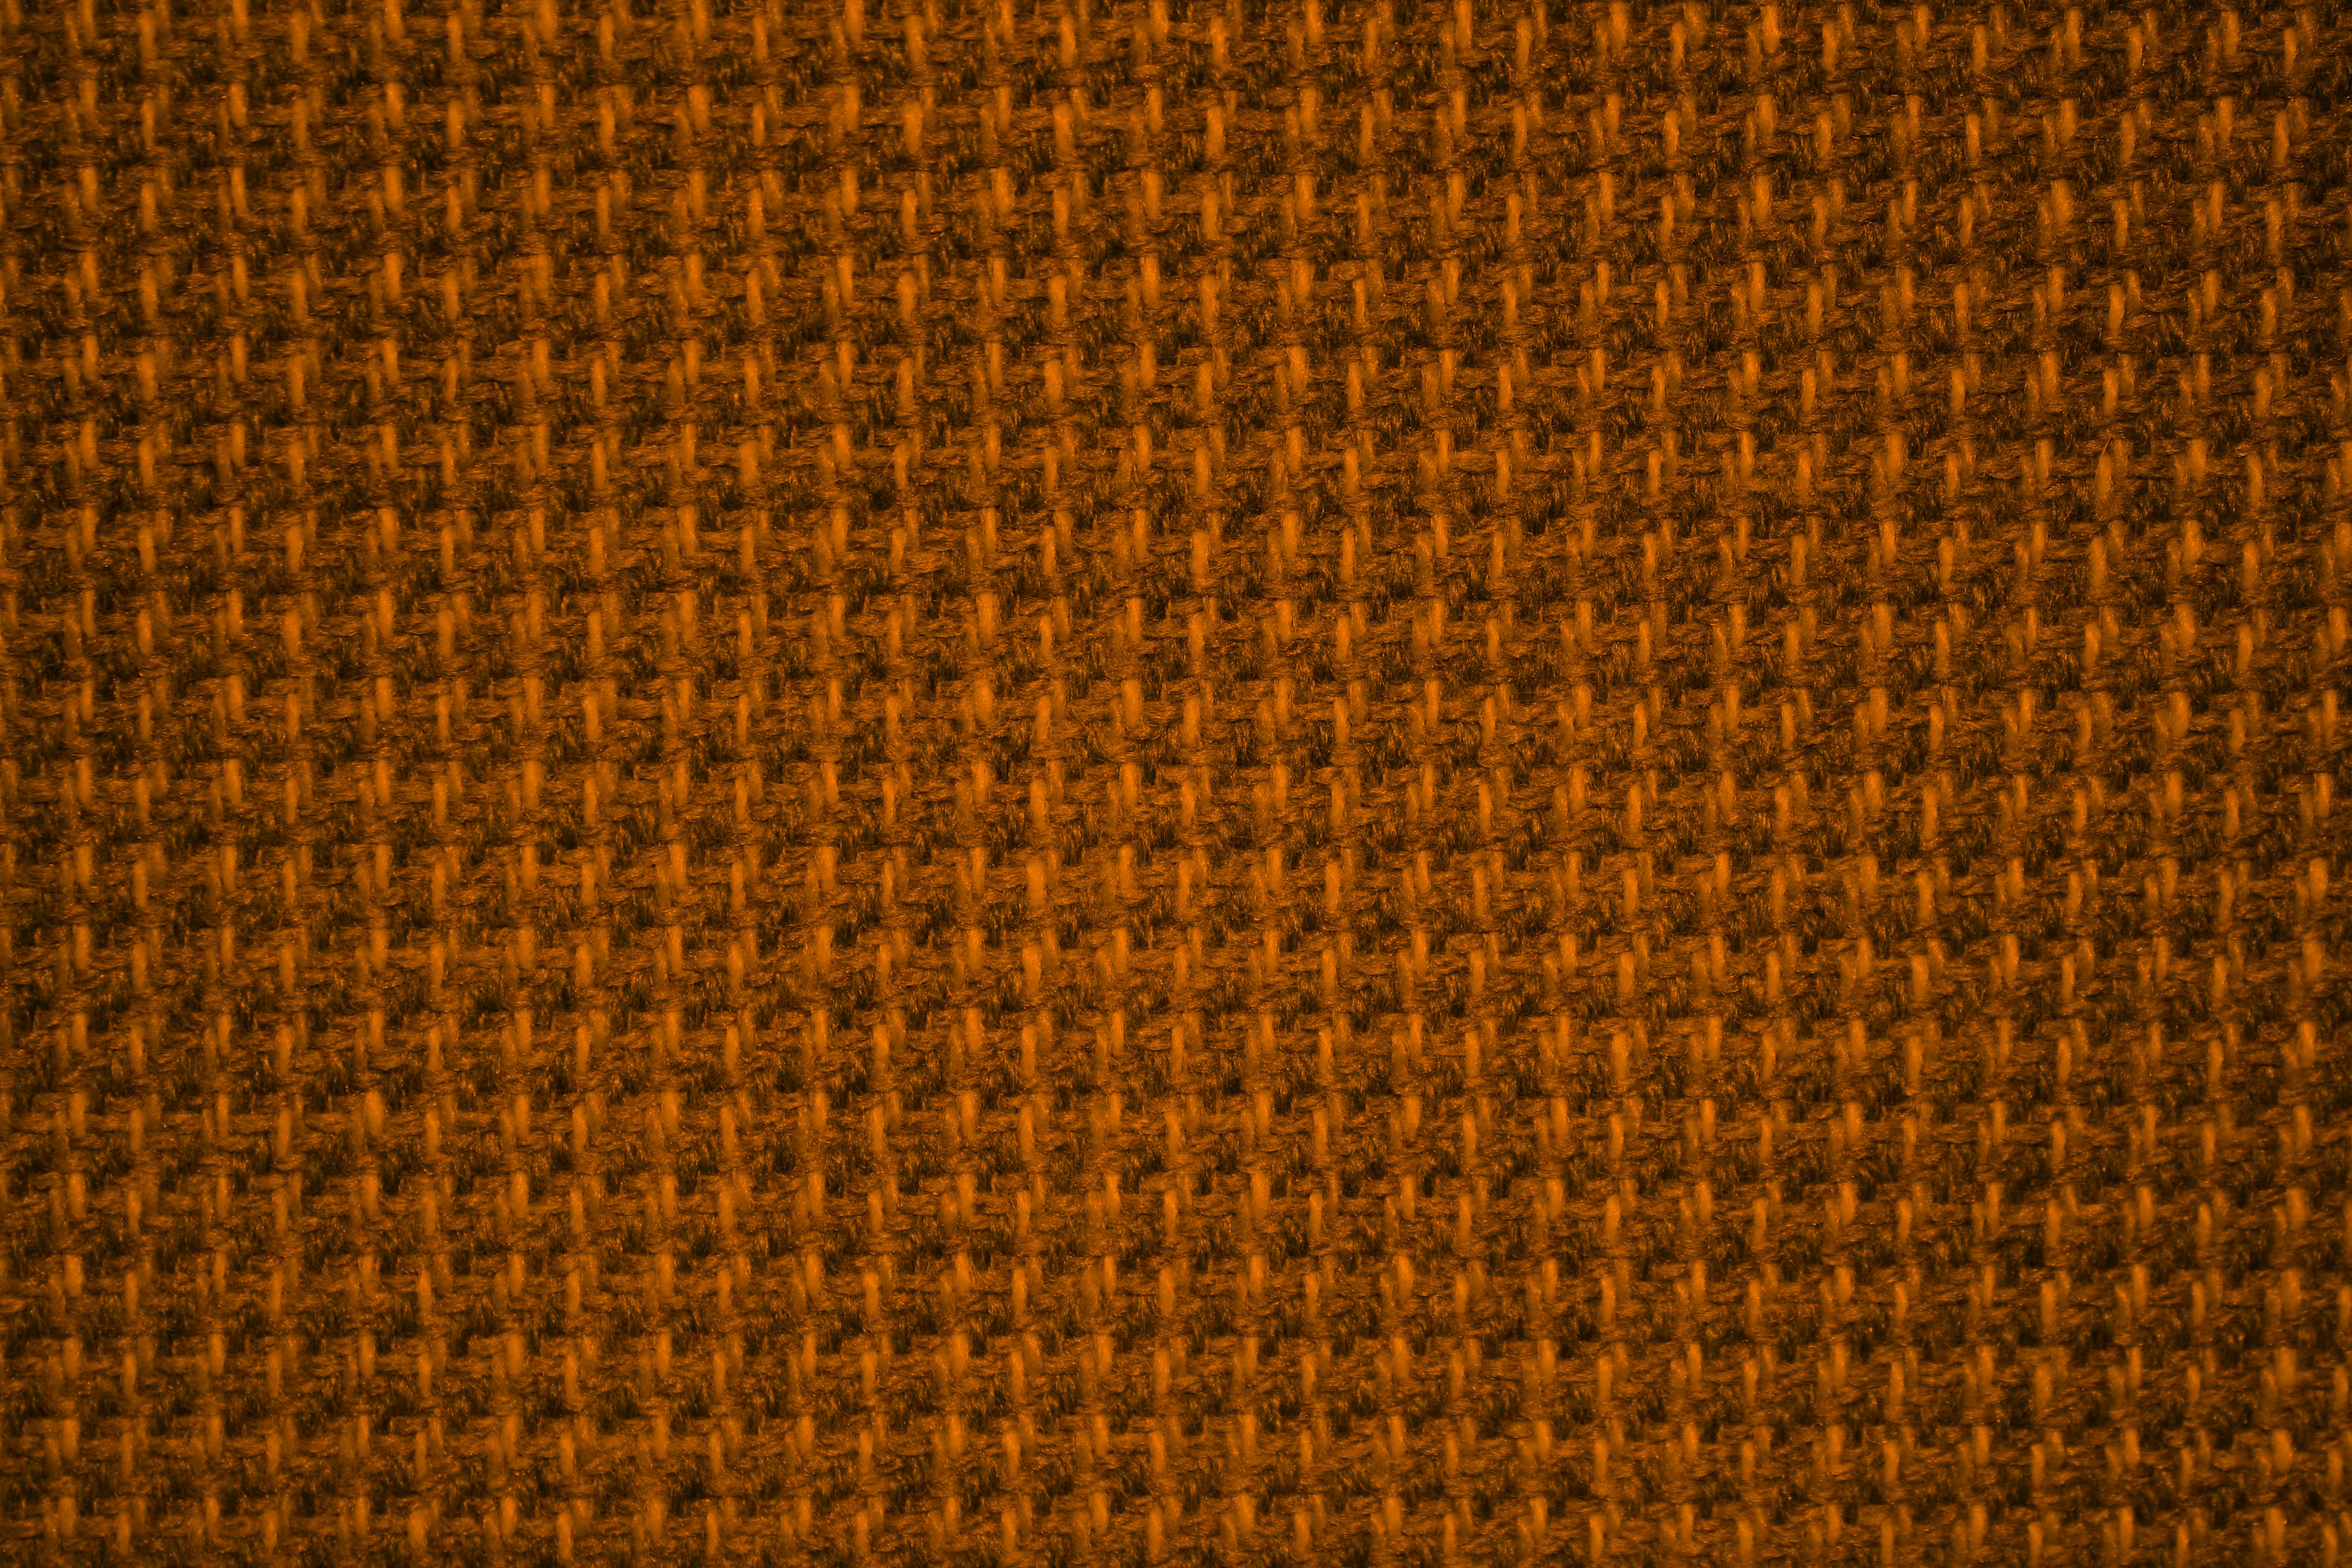 Rust Orange Upholstery Fabric Texture Picture | Free Photograph ...